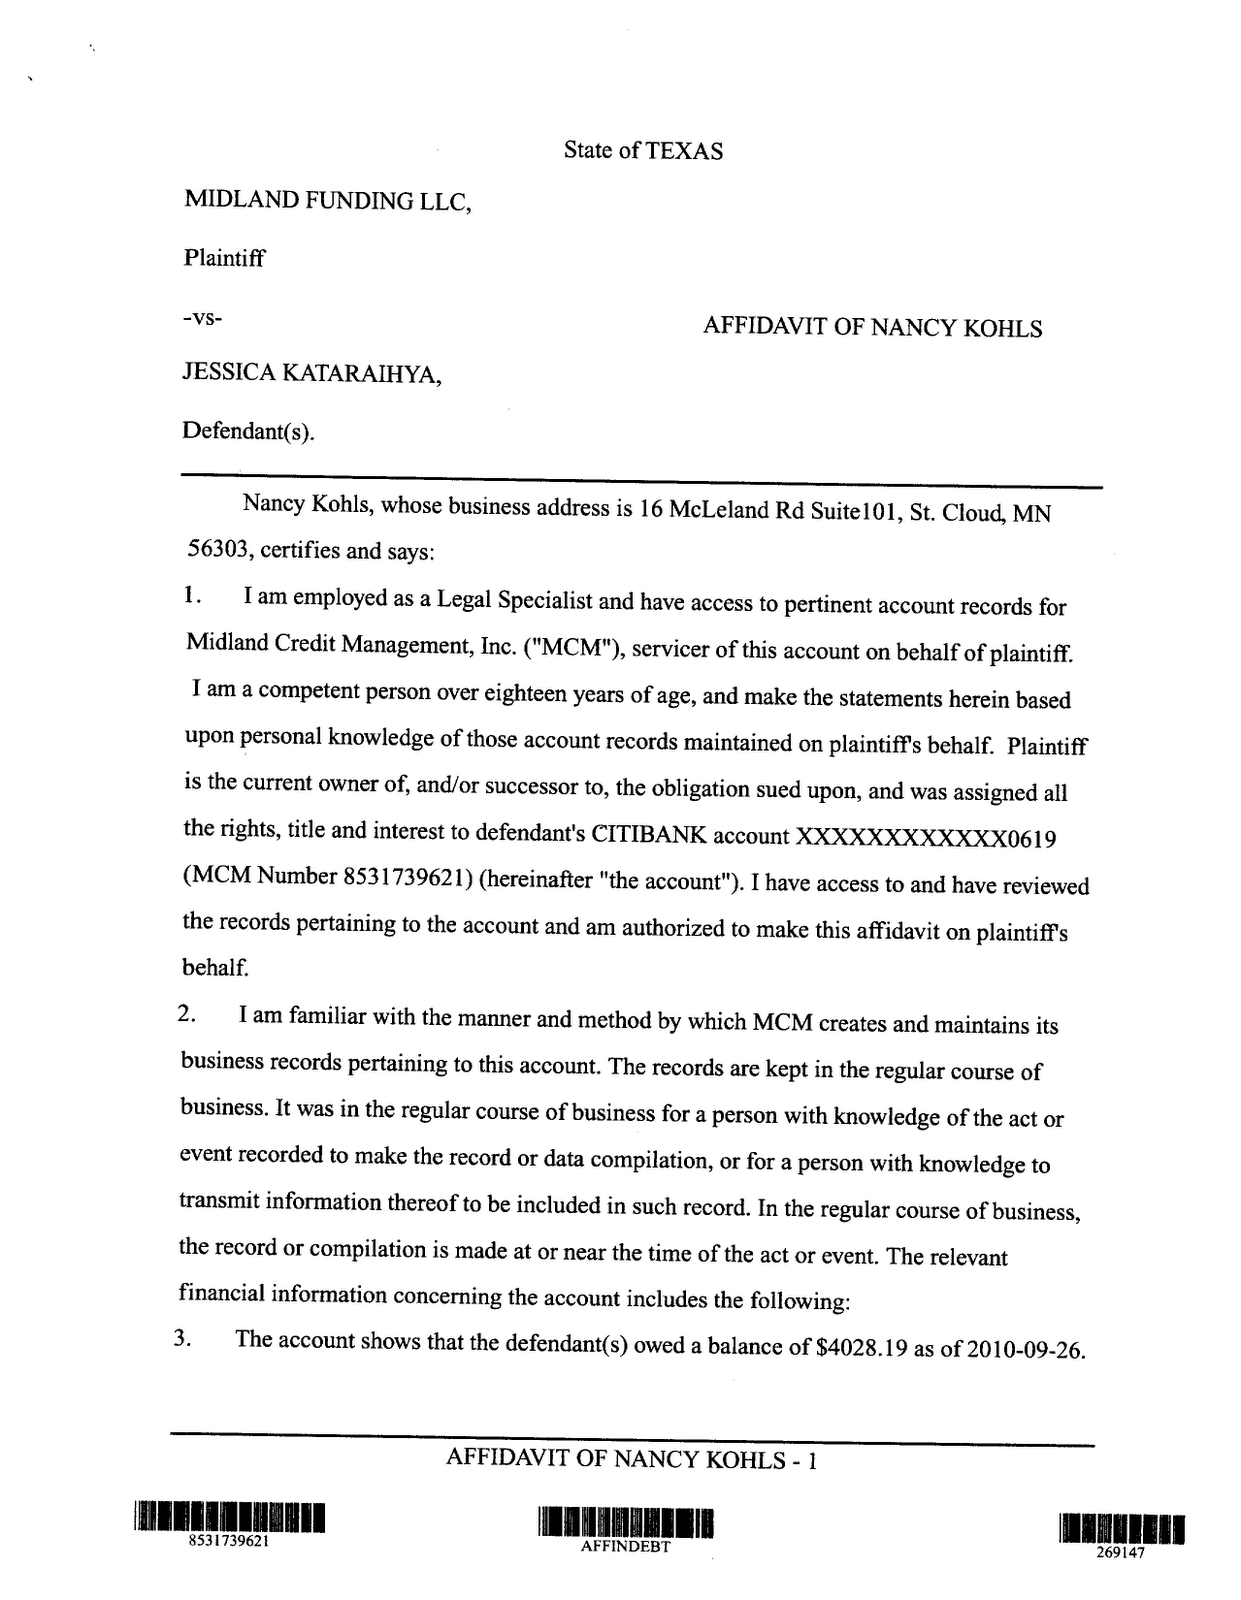 Typical Midland Affidavit from